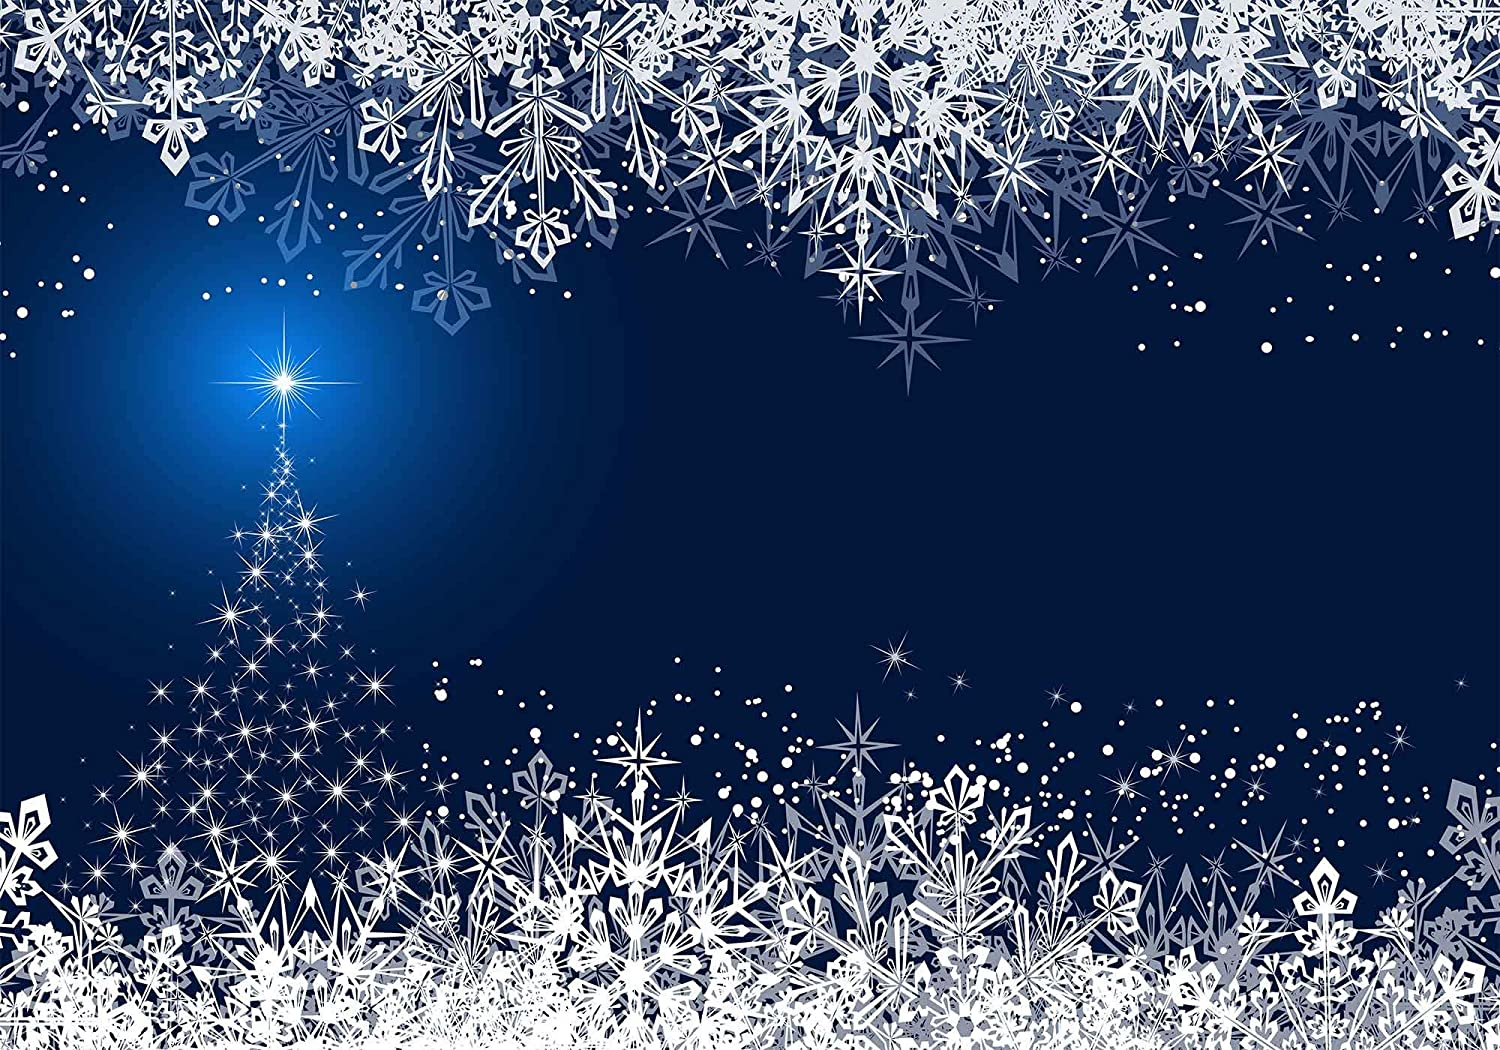 Christmas Backdrop Winter Landscape Snowflake Building Photography Background MEETSIOY 10x7ft Themed Party Photo Booth YouTube Backdrop LFMT453